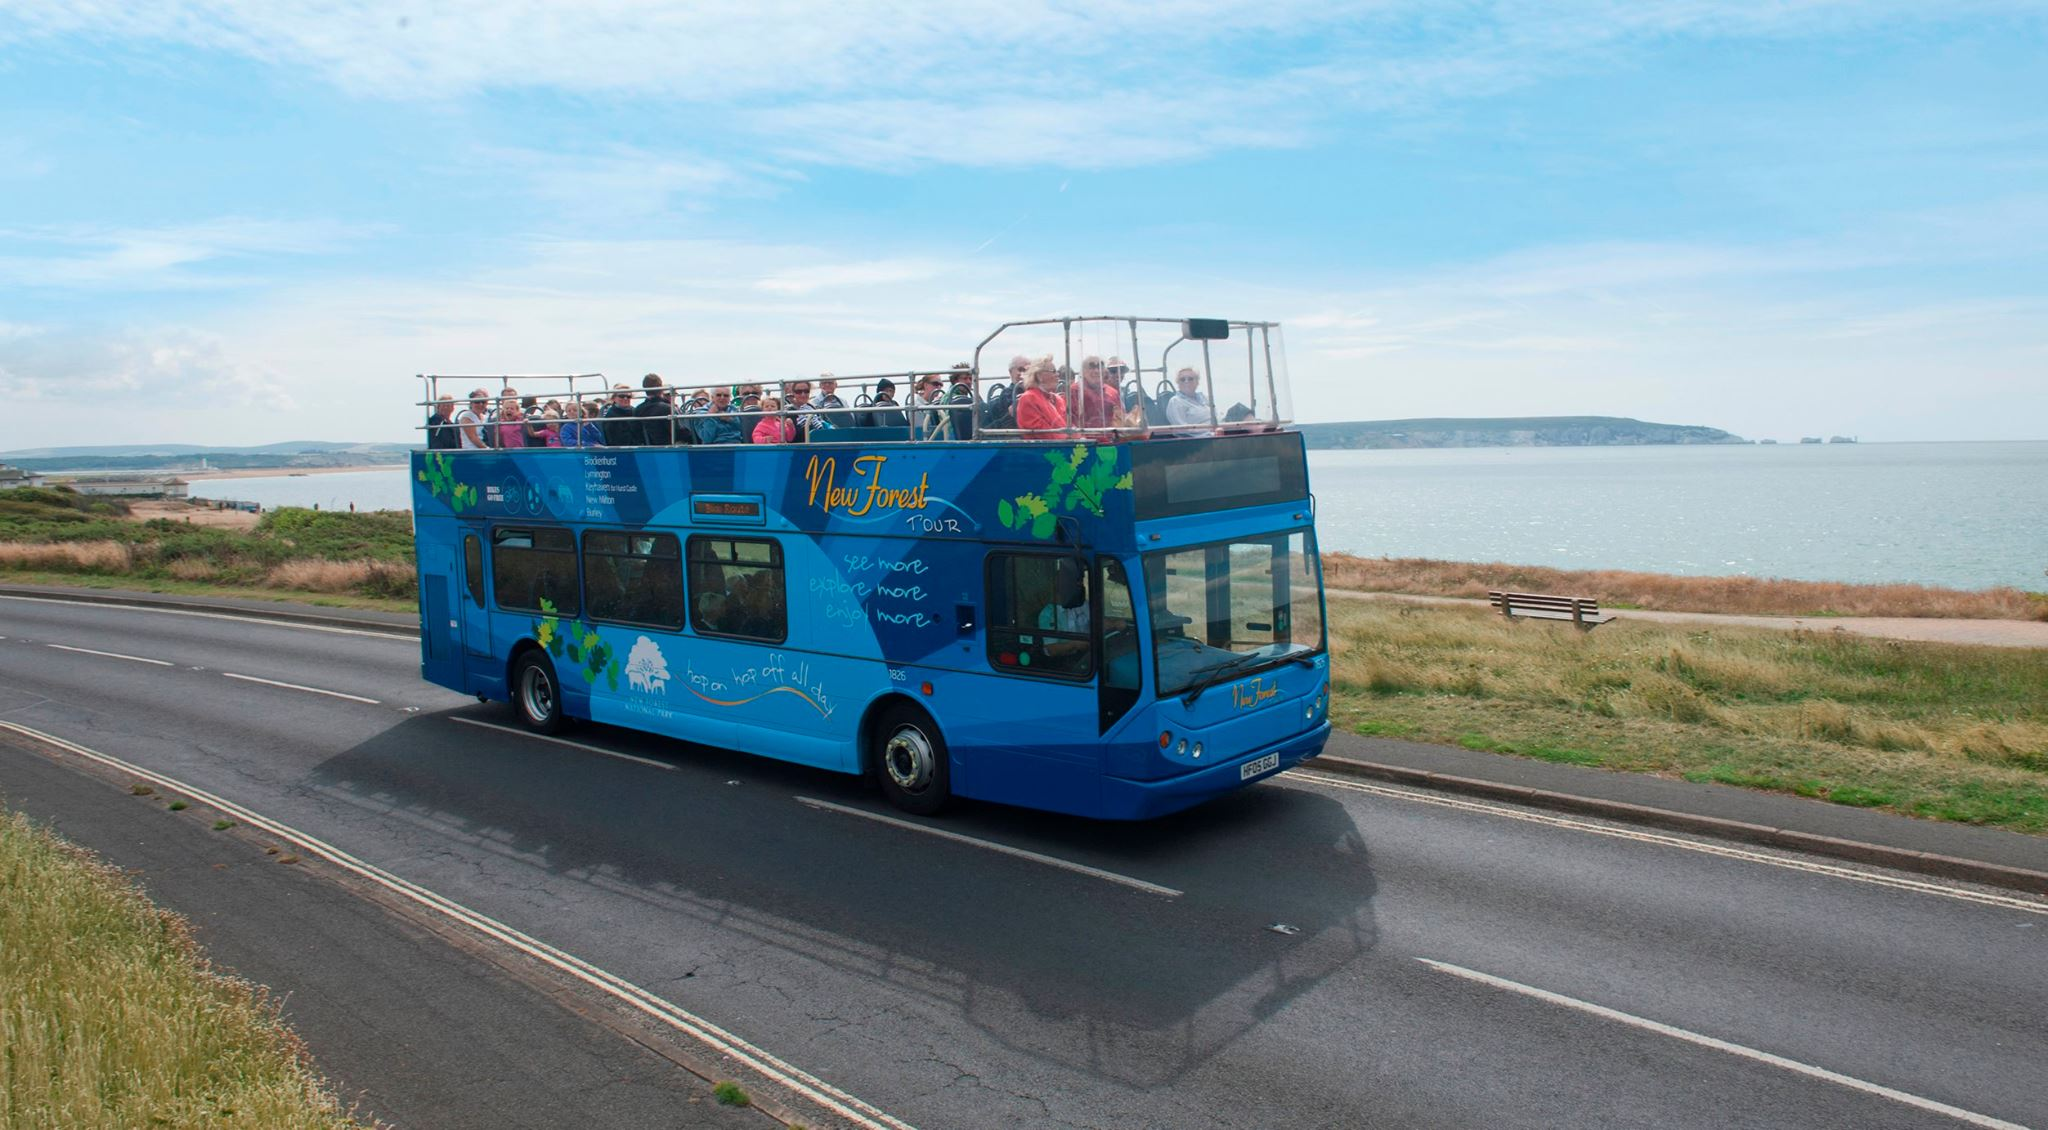 Photo of New Forest Tour open top bus, blue route in service